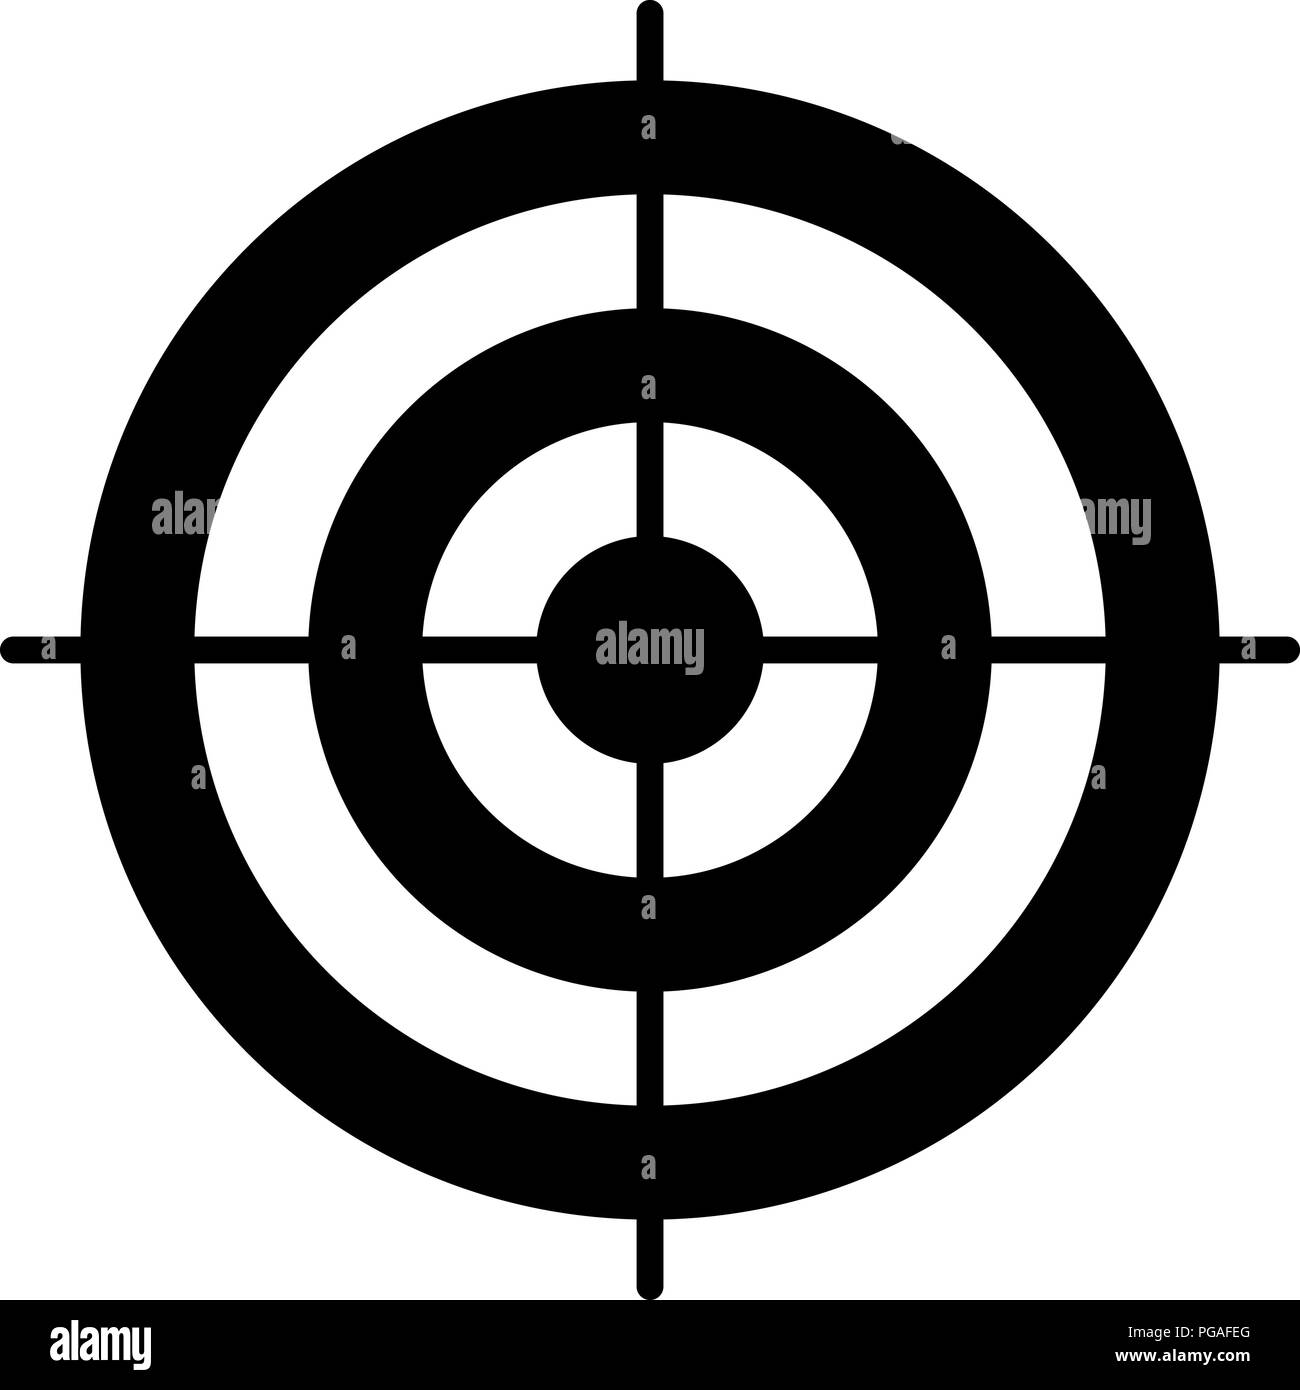 simple circle target template bullseye symbol stock vector art